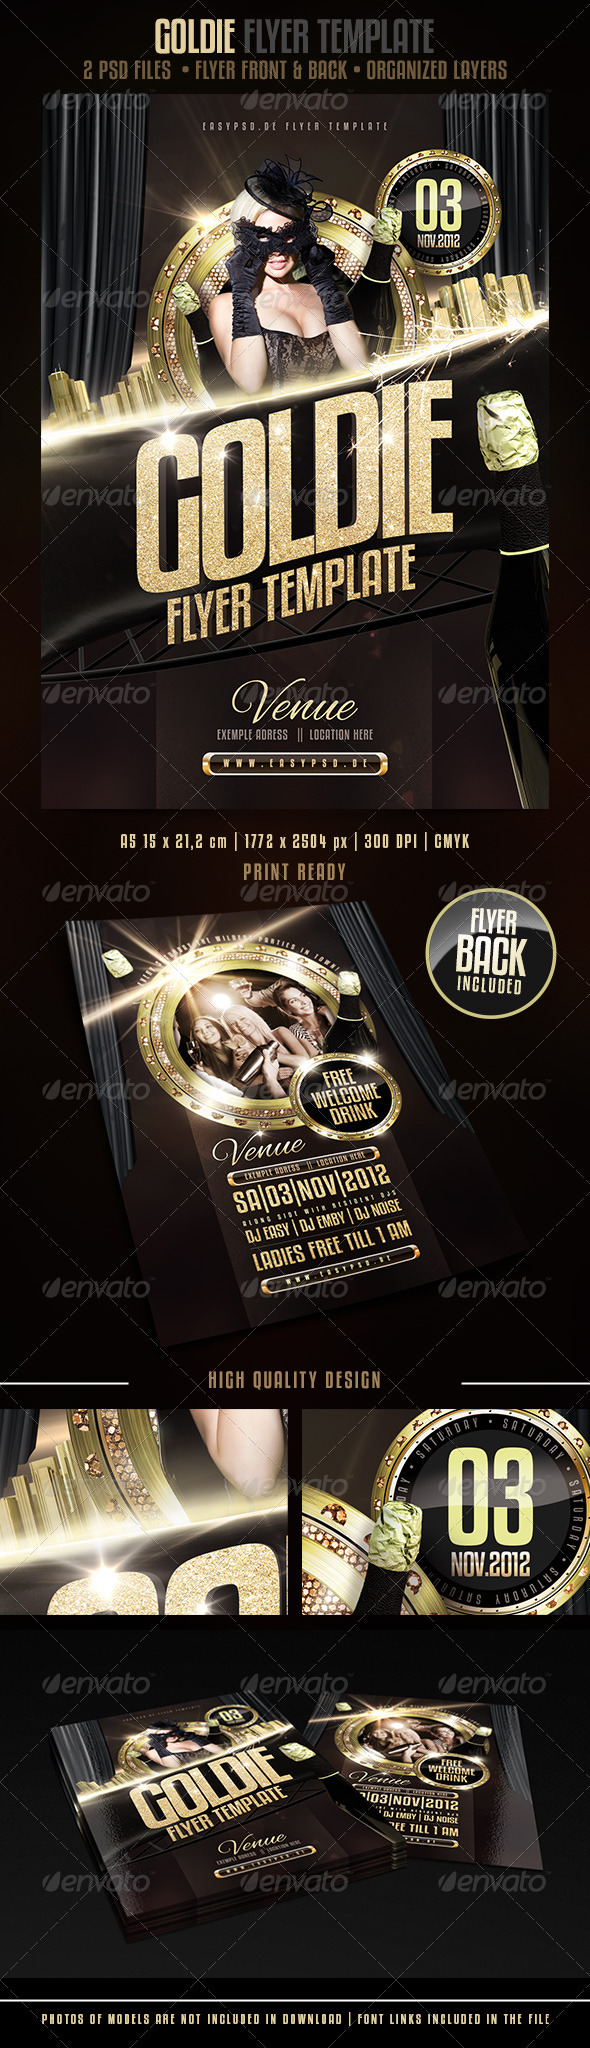 GOLDIE Flyer Template - Clubs & Parties Events